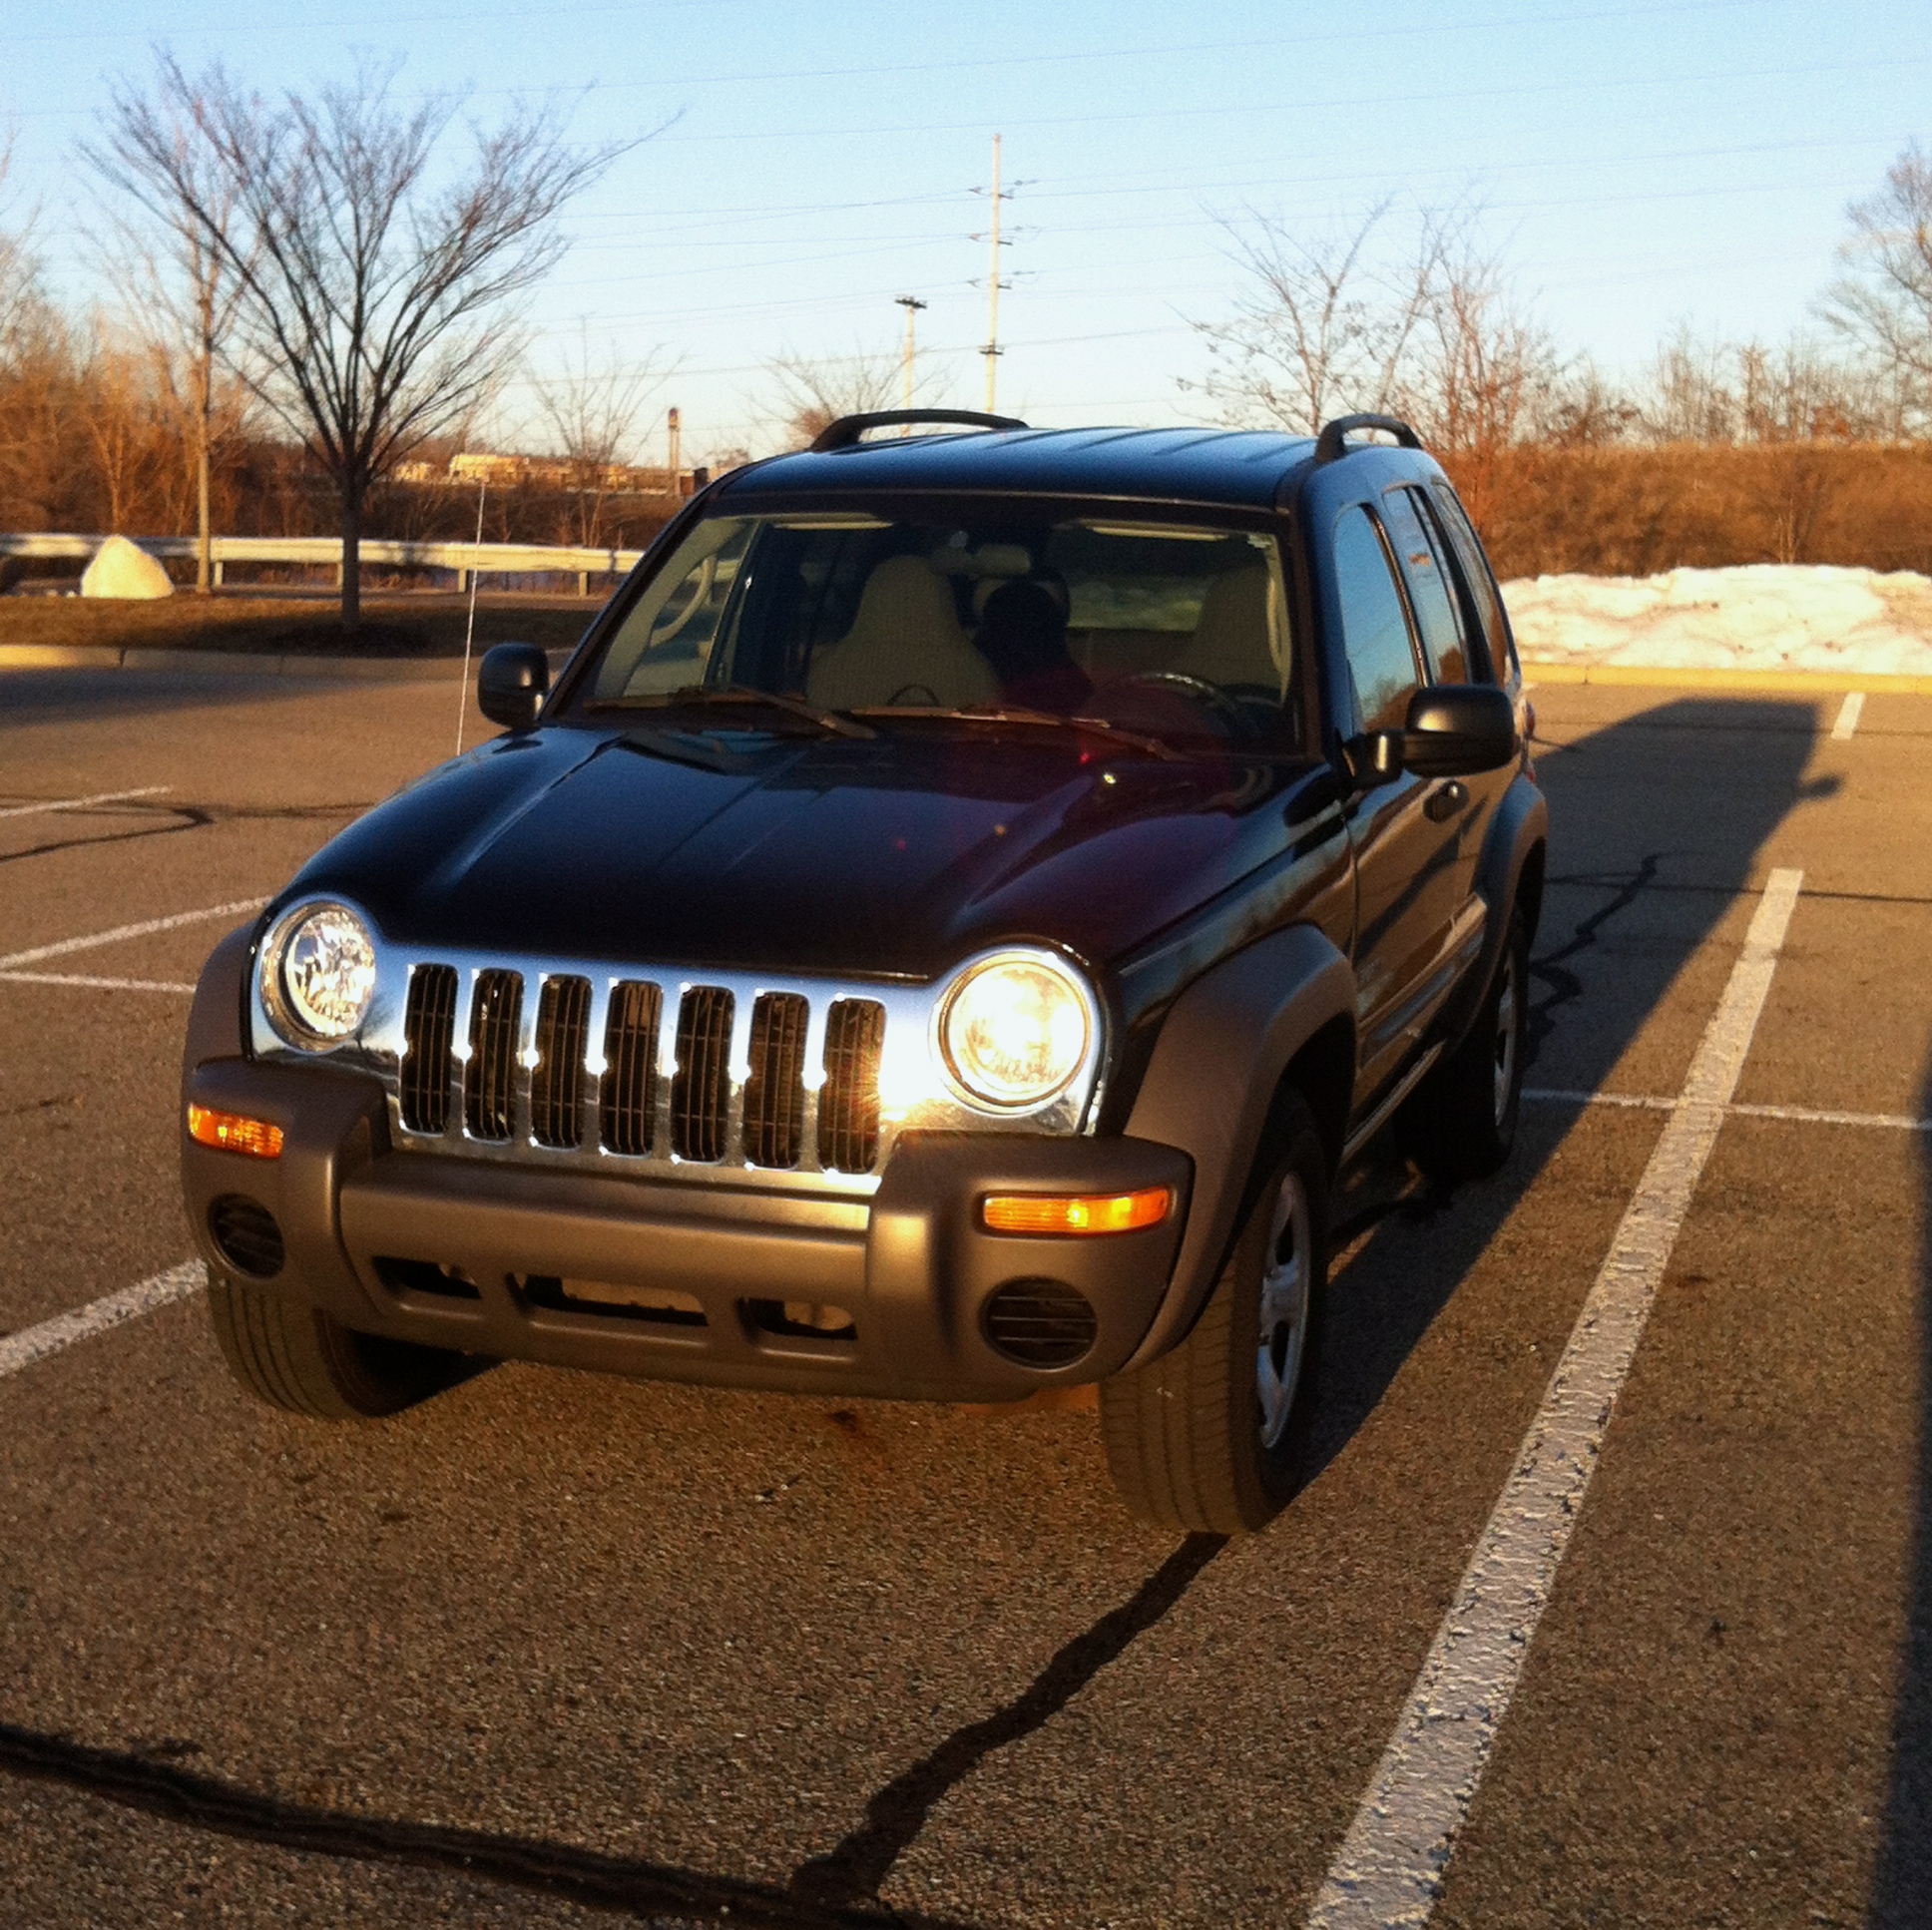 2004 Jeep Liberty Interior: 2004 Jeep Liberty For Sale – $5,800